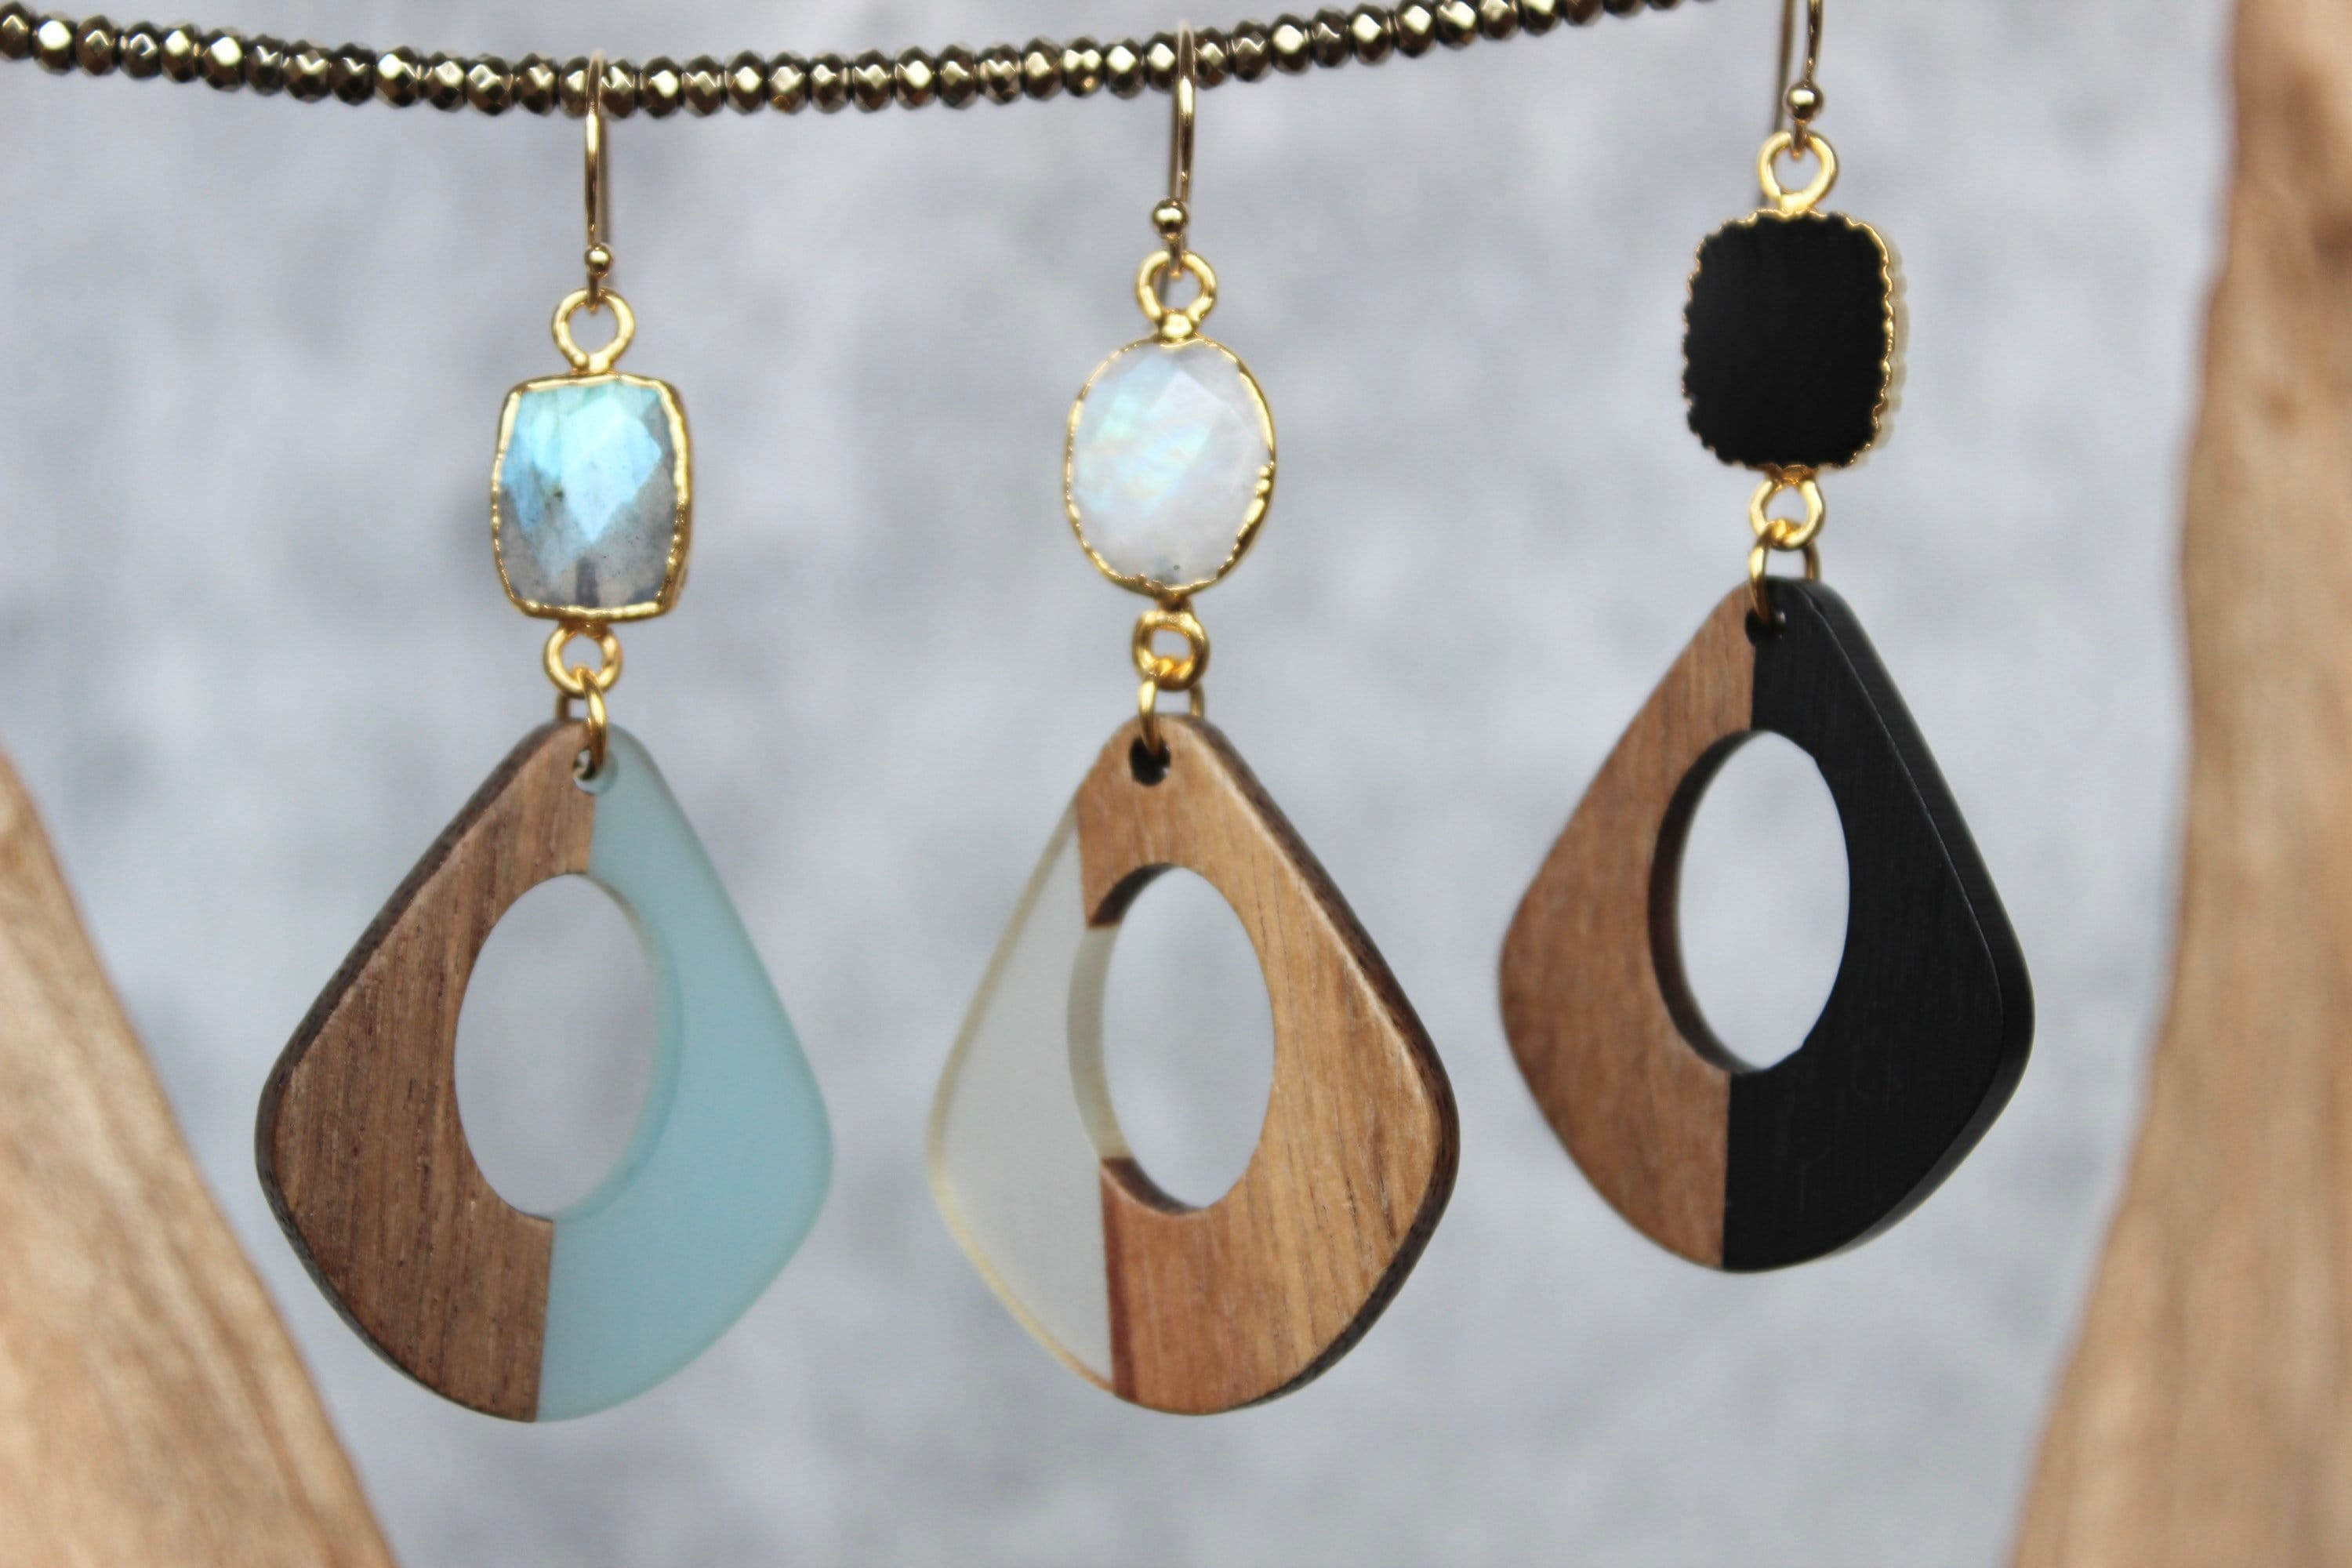 Wood and Resin Earrings with a stone dangle